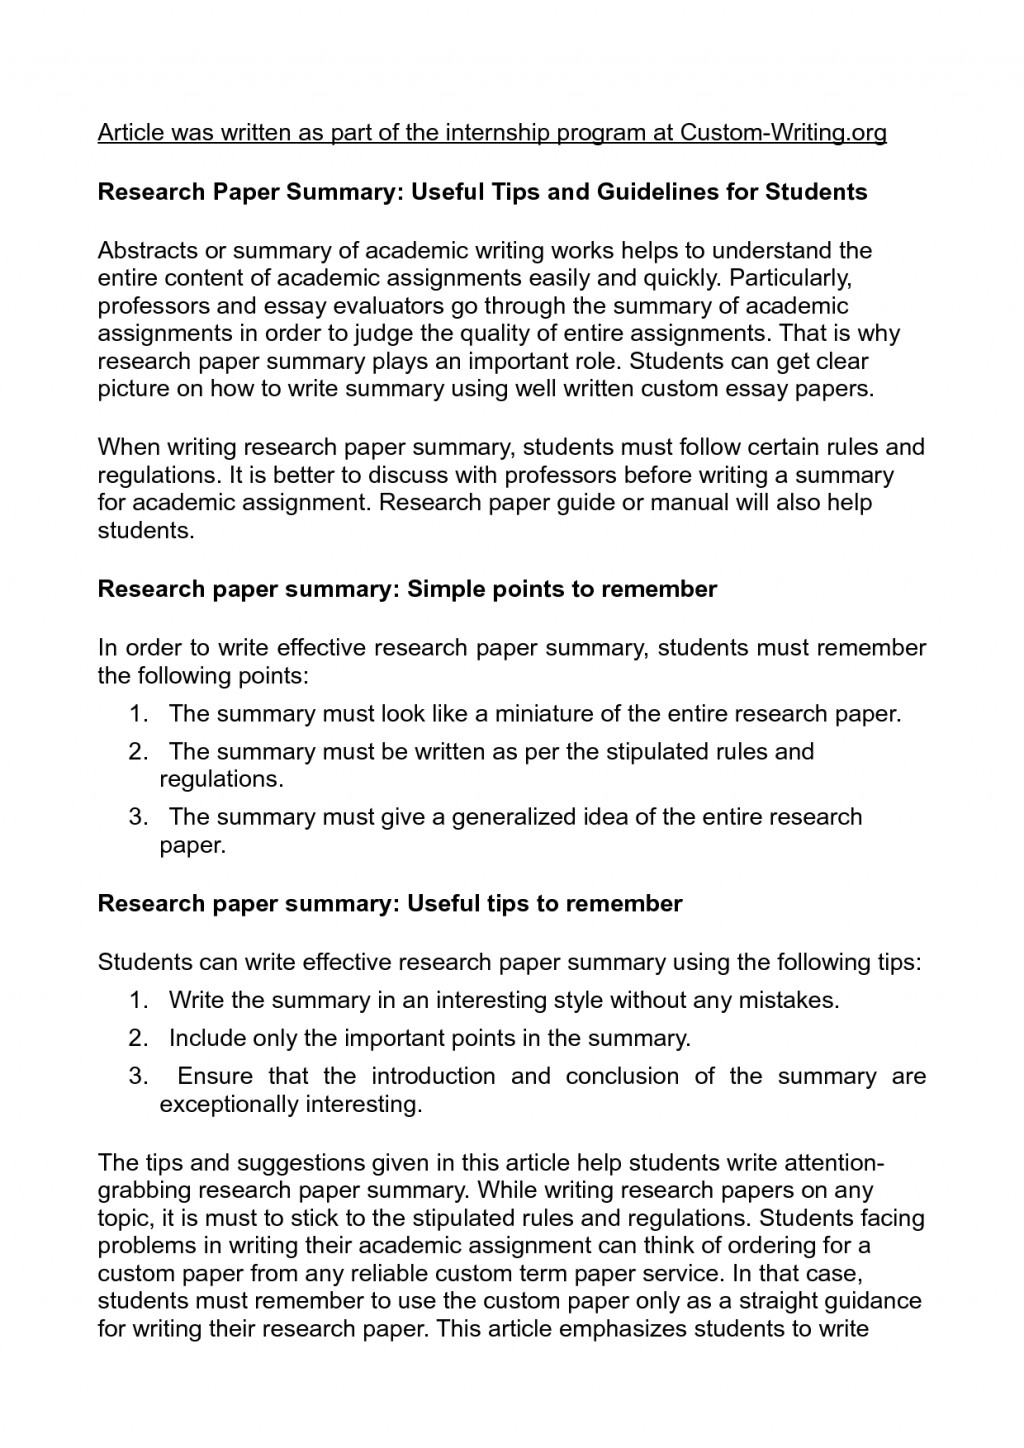 006 Essay Example Adhd Research Papers Brain Scan College About Writing Paper Summary 5 Impressive Introduction Thesis Statement Large